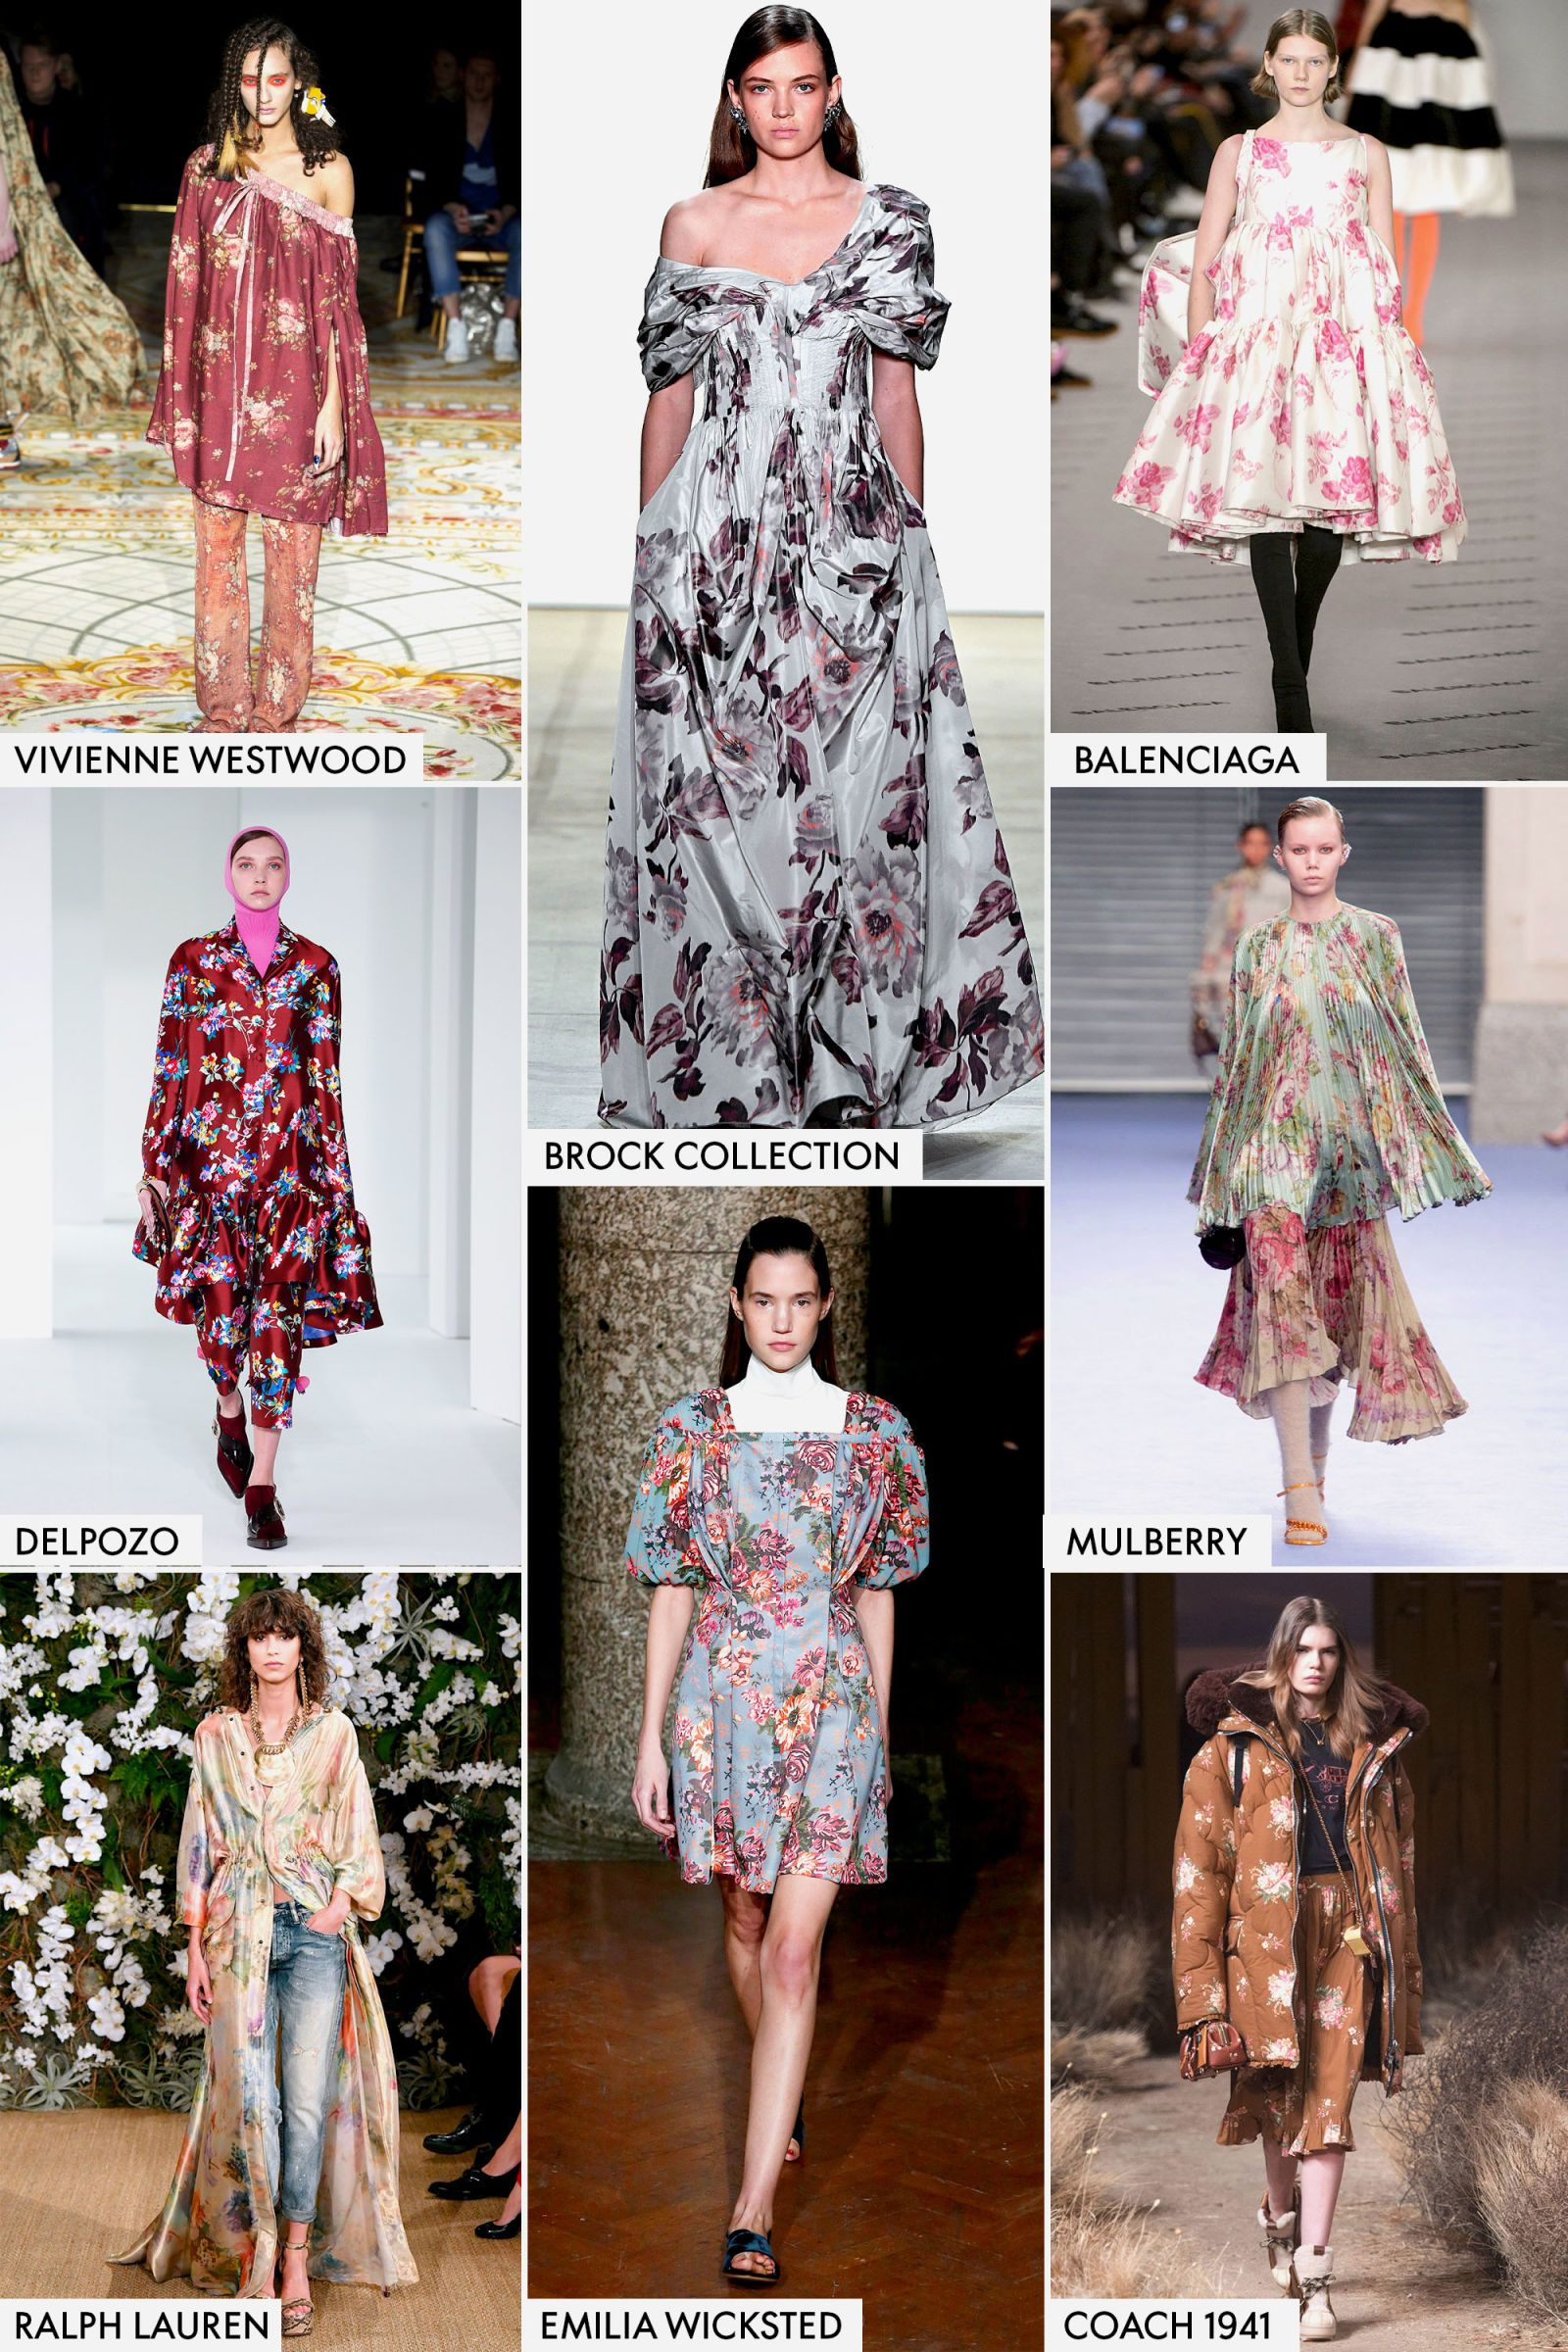 Top dress styles for fall 2018 issue